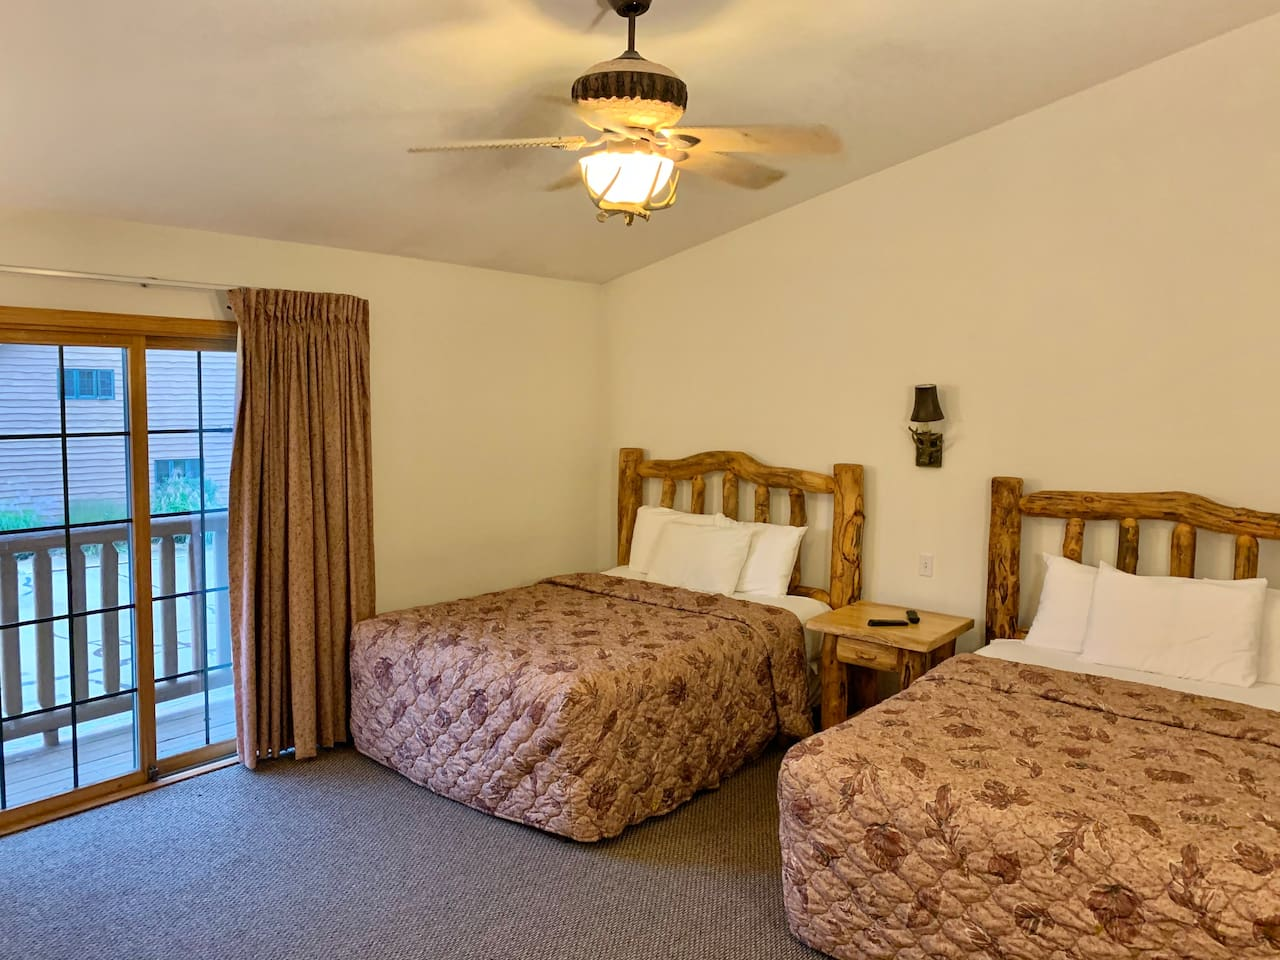 Enjoy the double queen suite with private access to beautiful balcony overlooking the area.